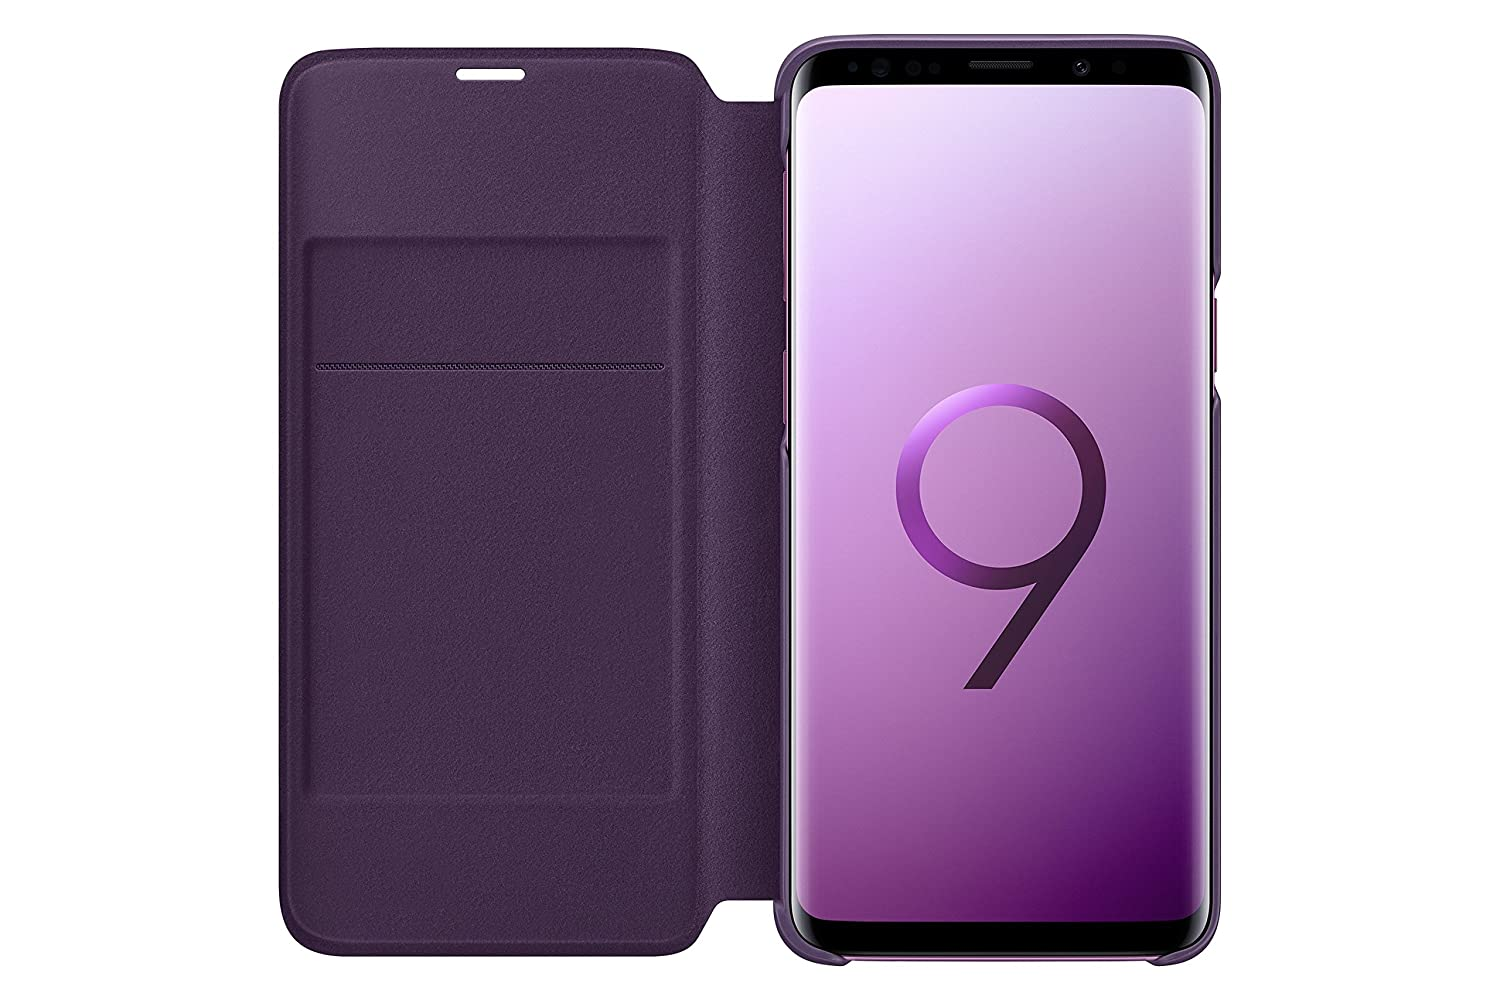 Amazon.com: Funda tipo cartera para Samsung Galaxy S9 con ...